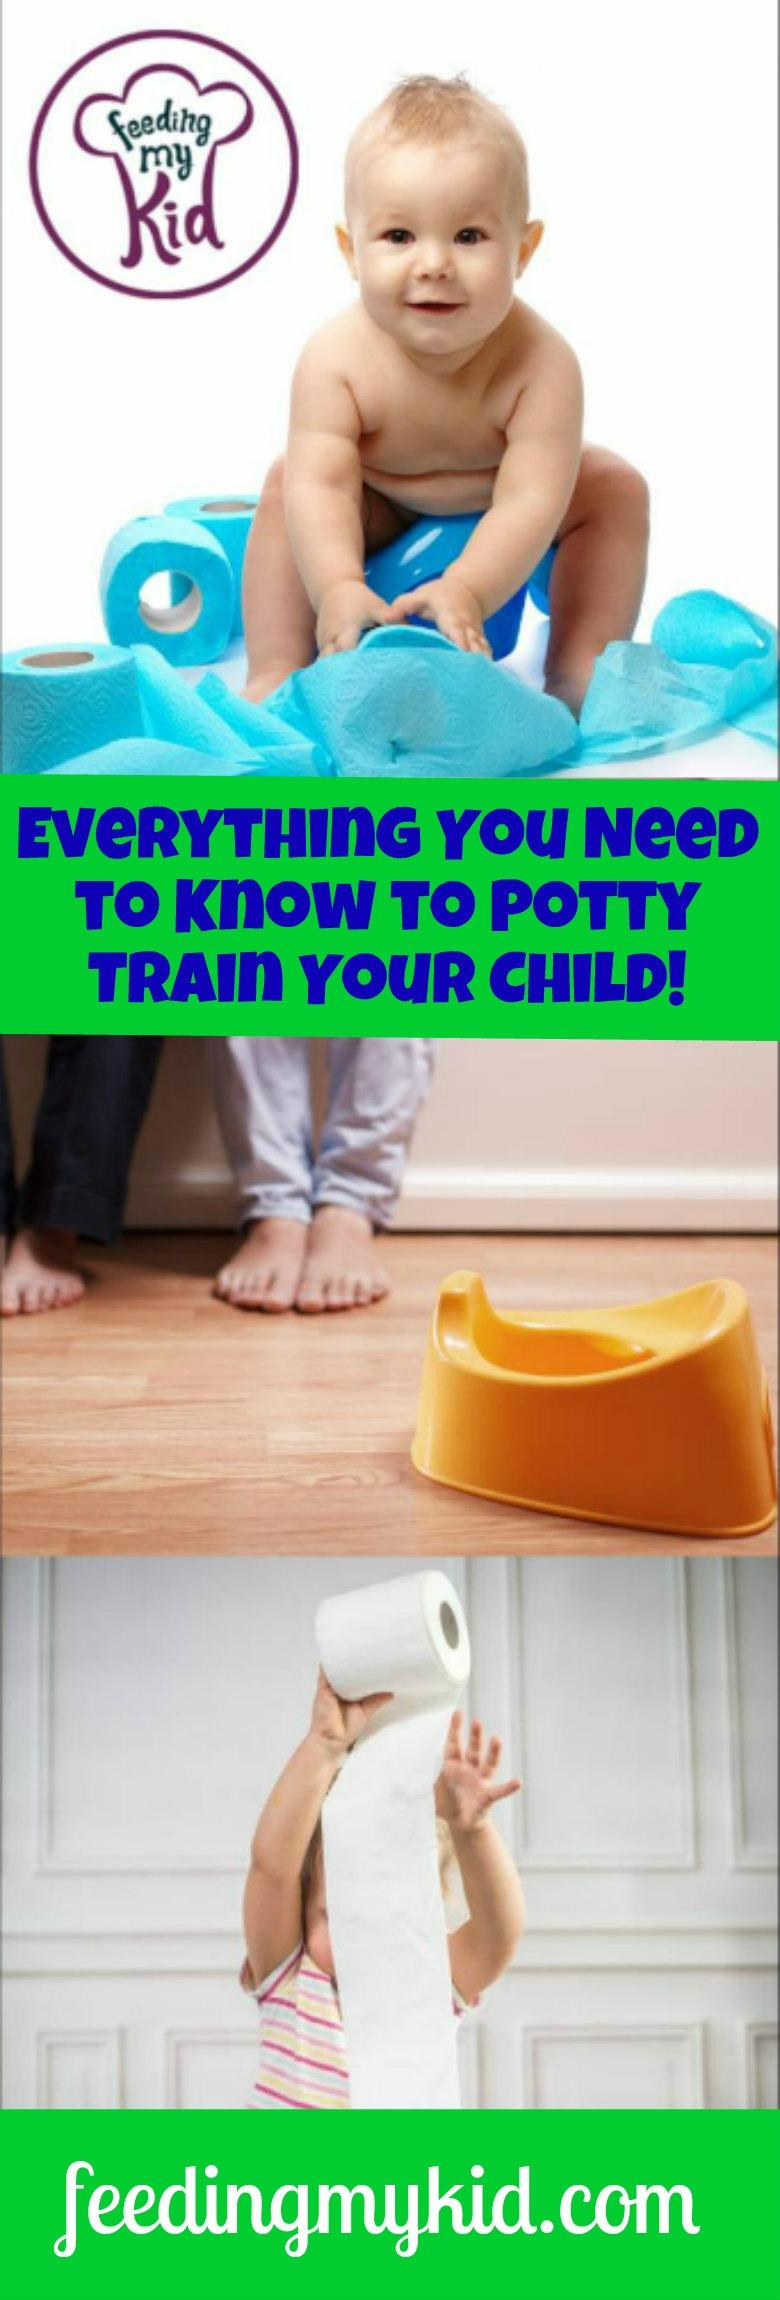 Everything You Need to Know to Potty Train Your Child!